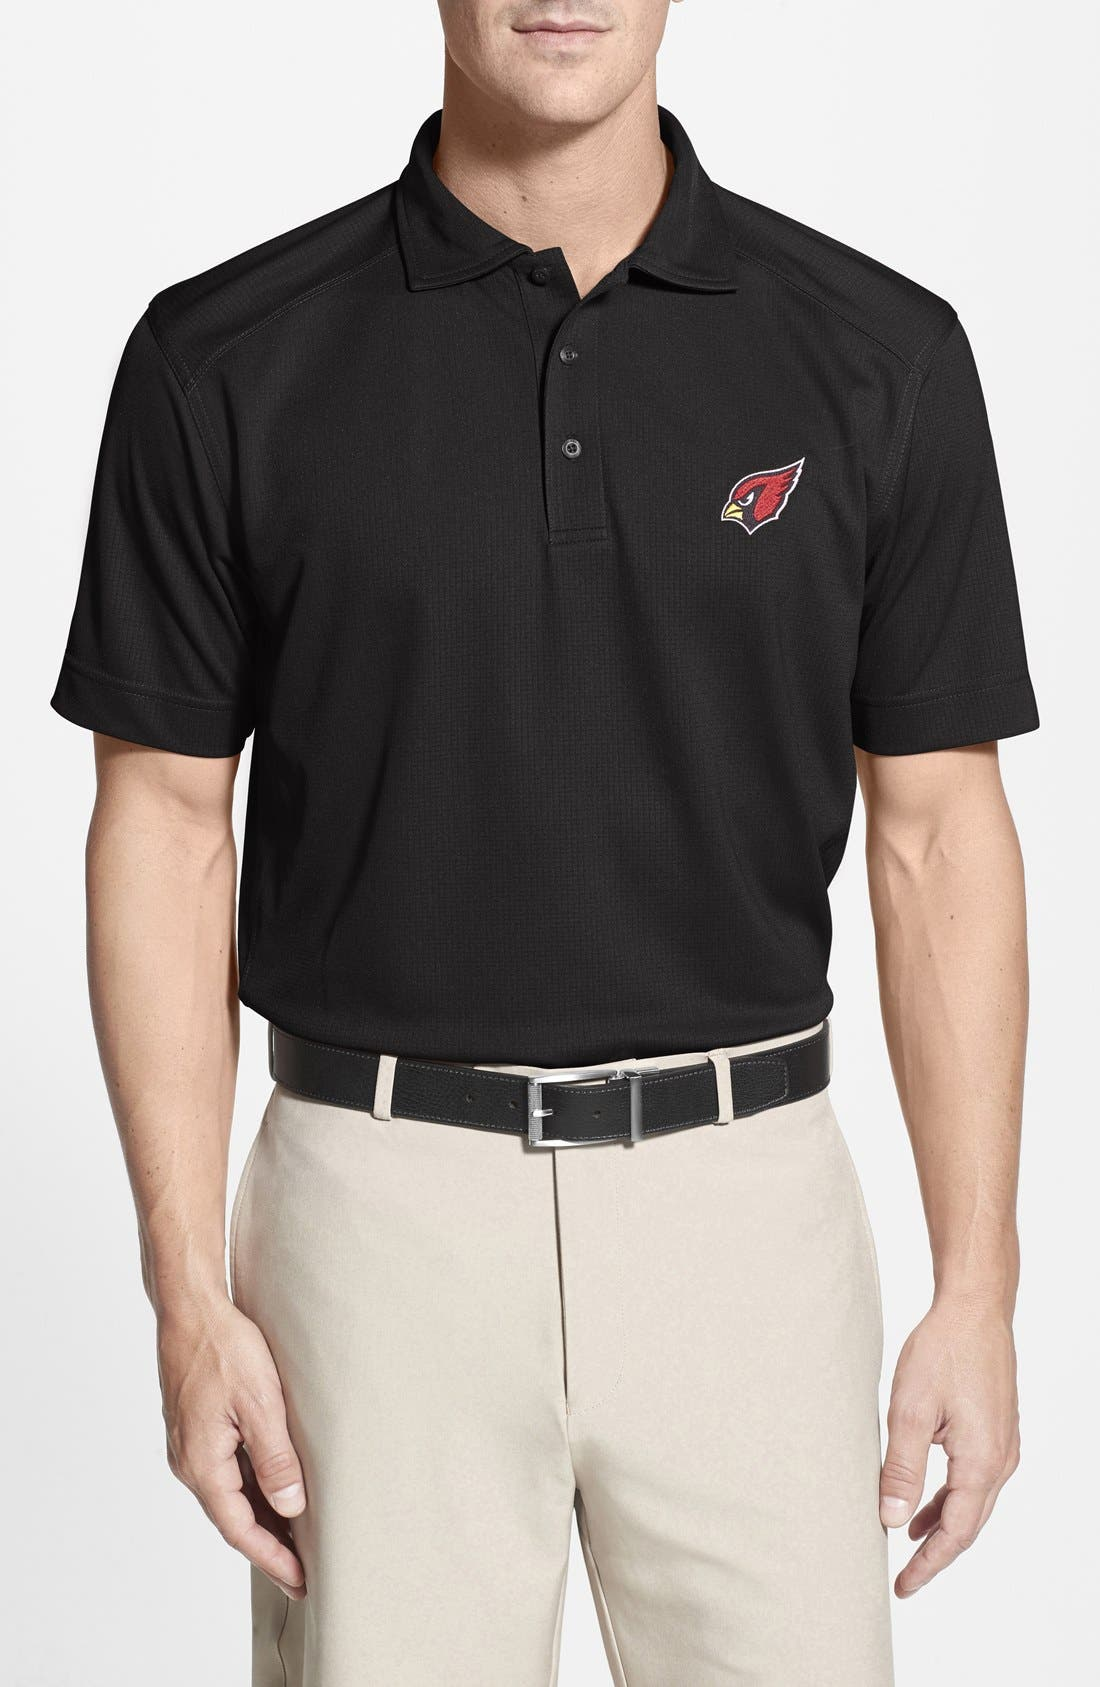 Main Image - Cutter & Buck Arizona Cardinals - Genre DryTec Moisture Wicking Polo